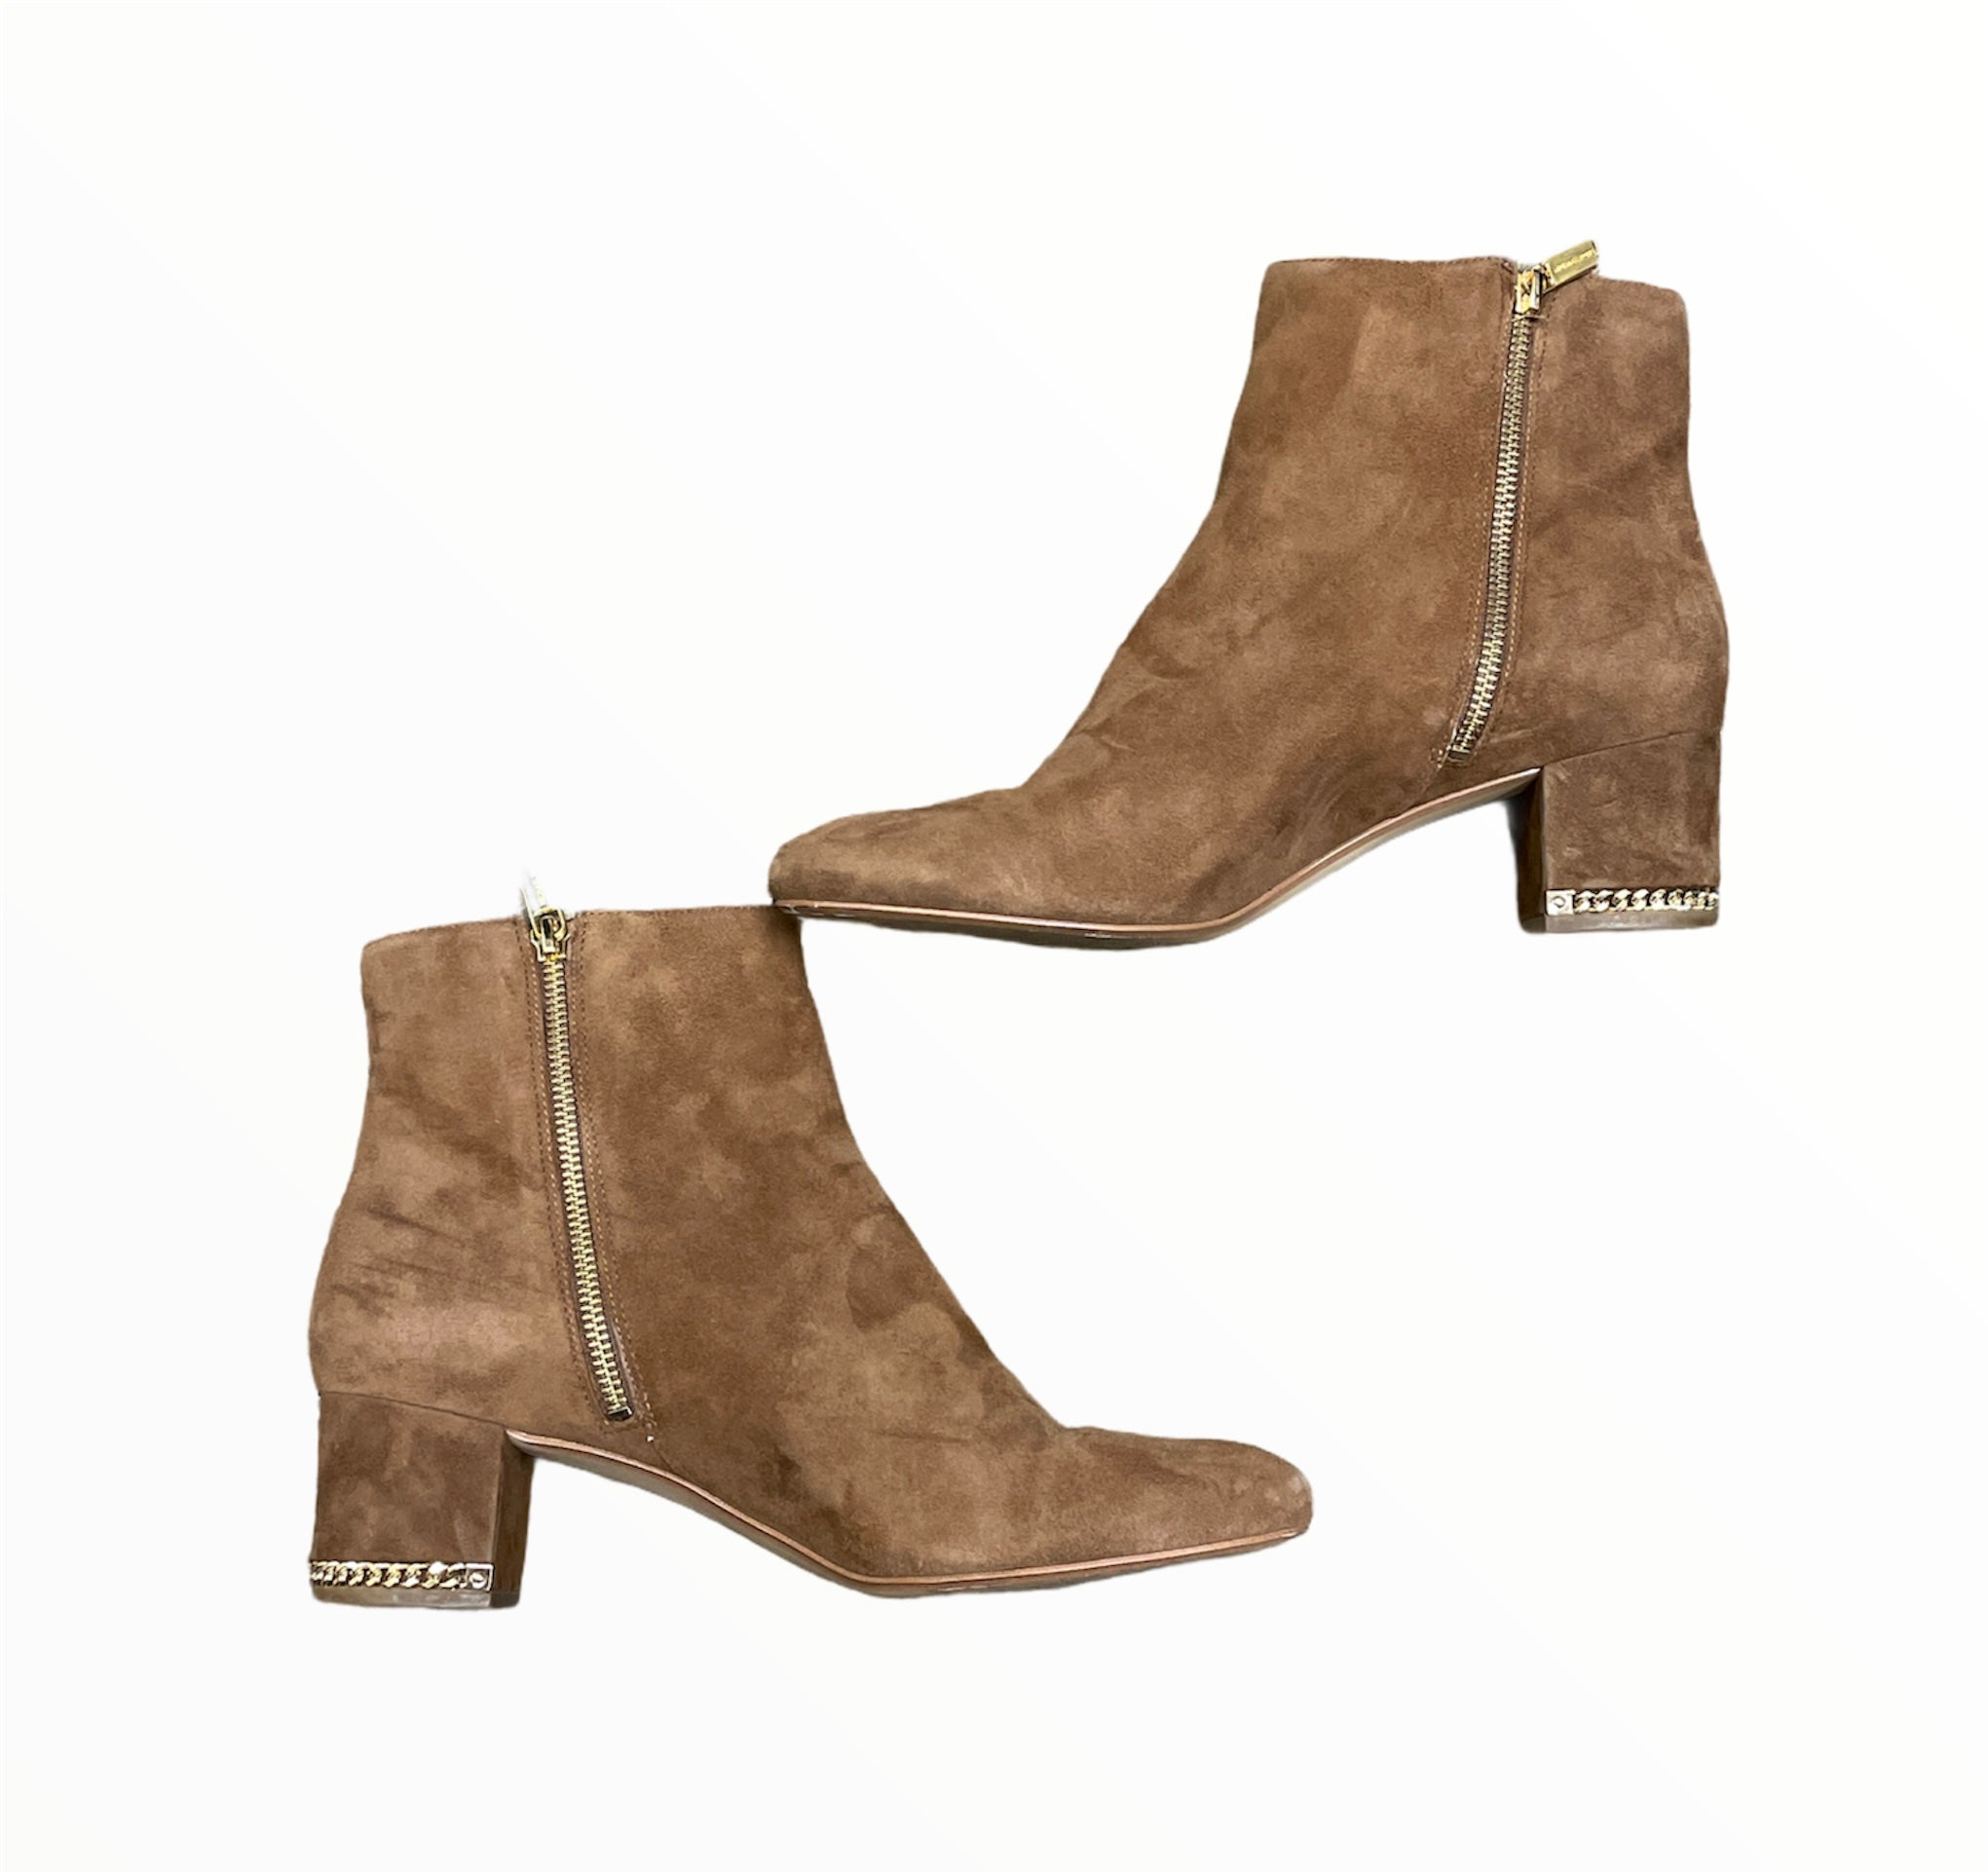 Photo #2 - BRAND: MICHAEL KORS <BR>STYLE: BOOTS ANKLE <BR>COLOR: CAMEL <BR>SIZE: 11 <BR>SKU: 223-22364-43323